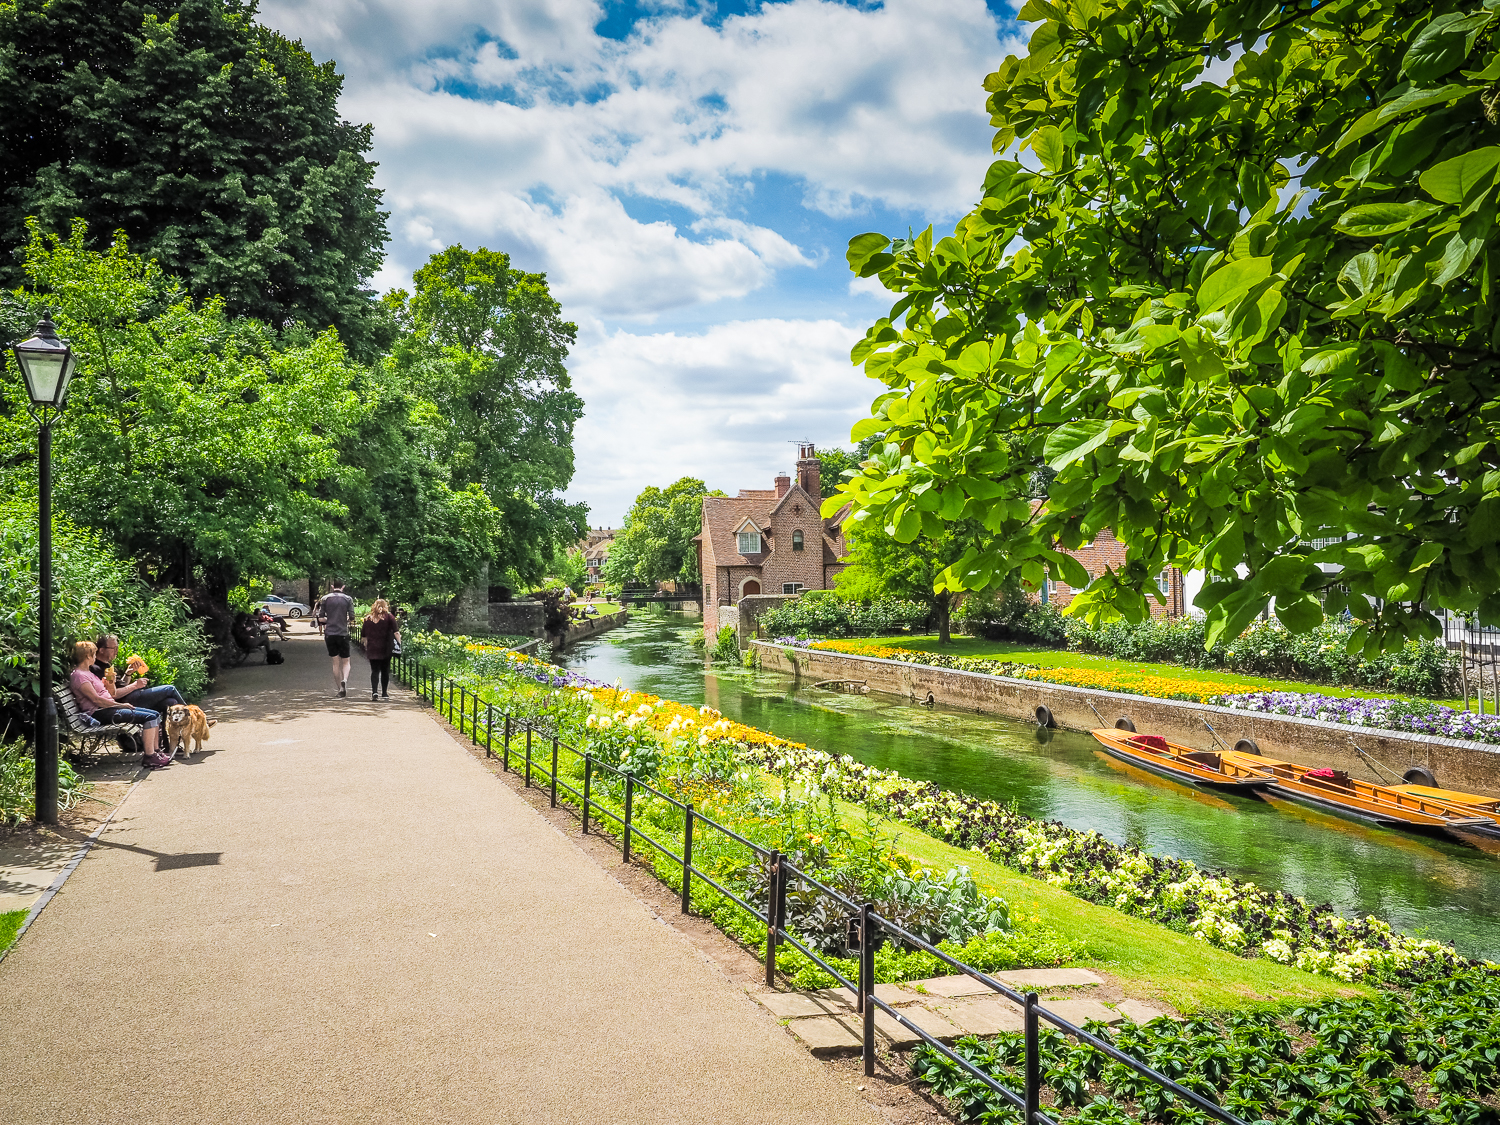 Canterbury, Kent, and the crystal clear River Stour, UK.